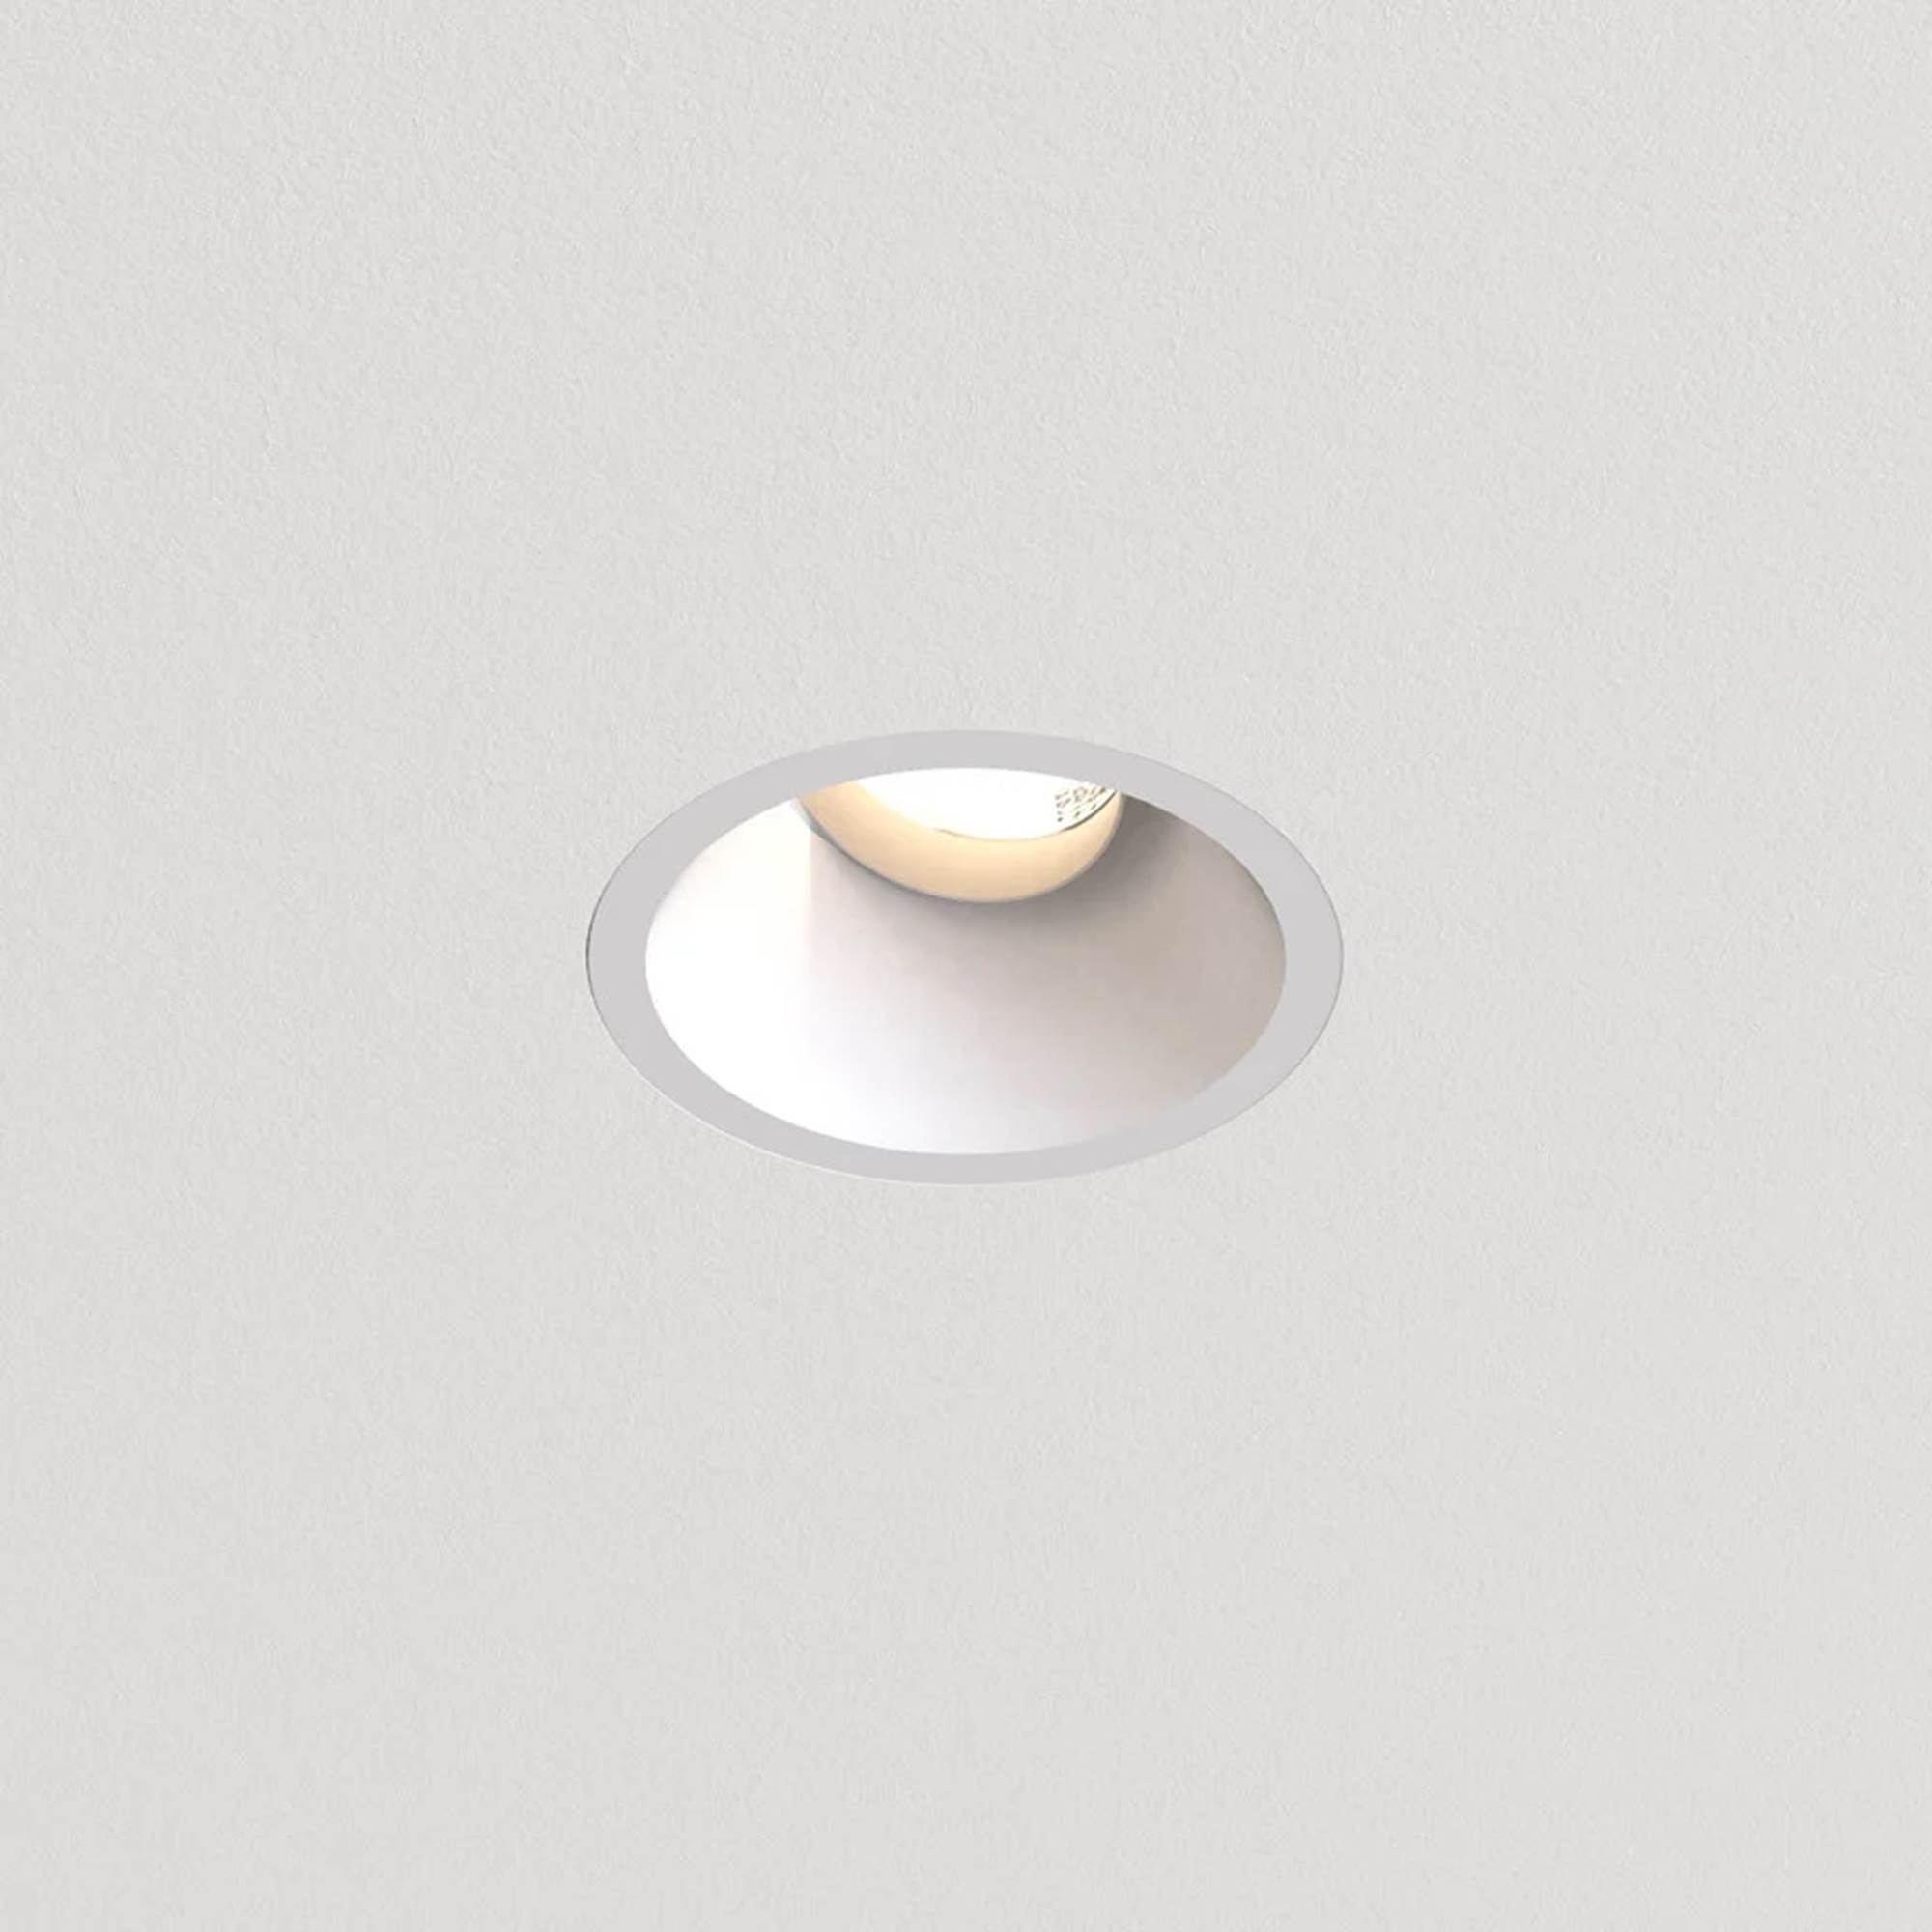 Astro Proform Nt Round Adjustable Led Recessed Ceiling Light